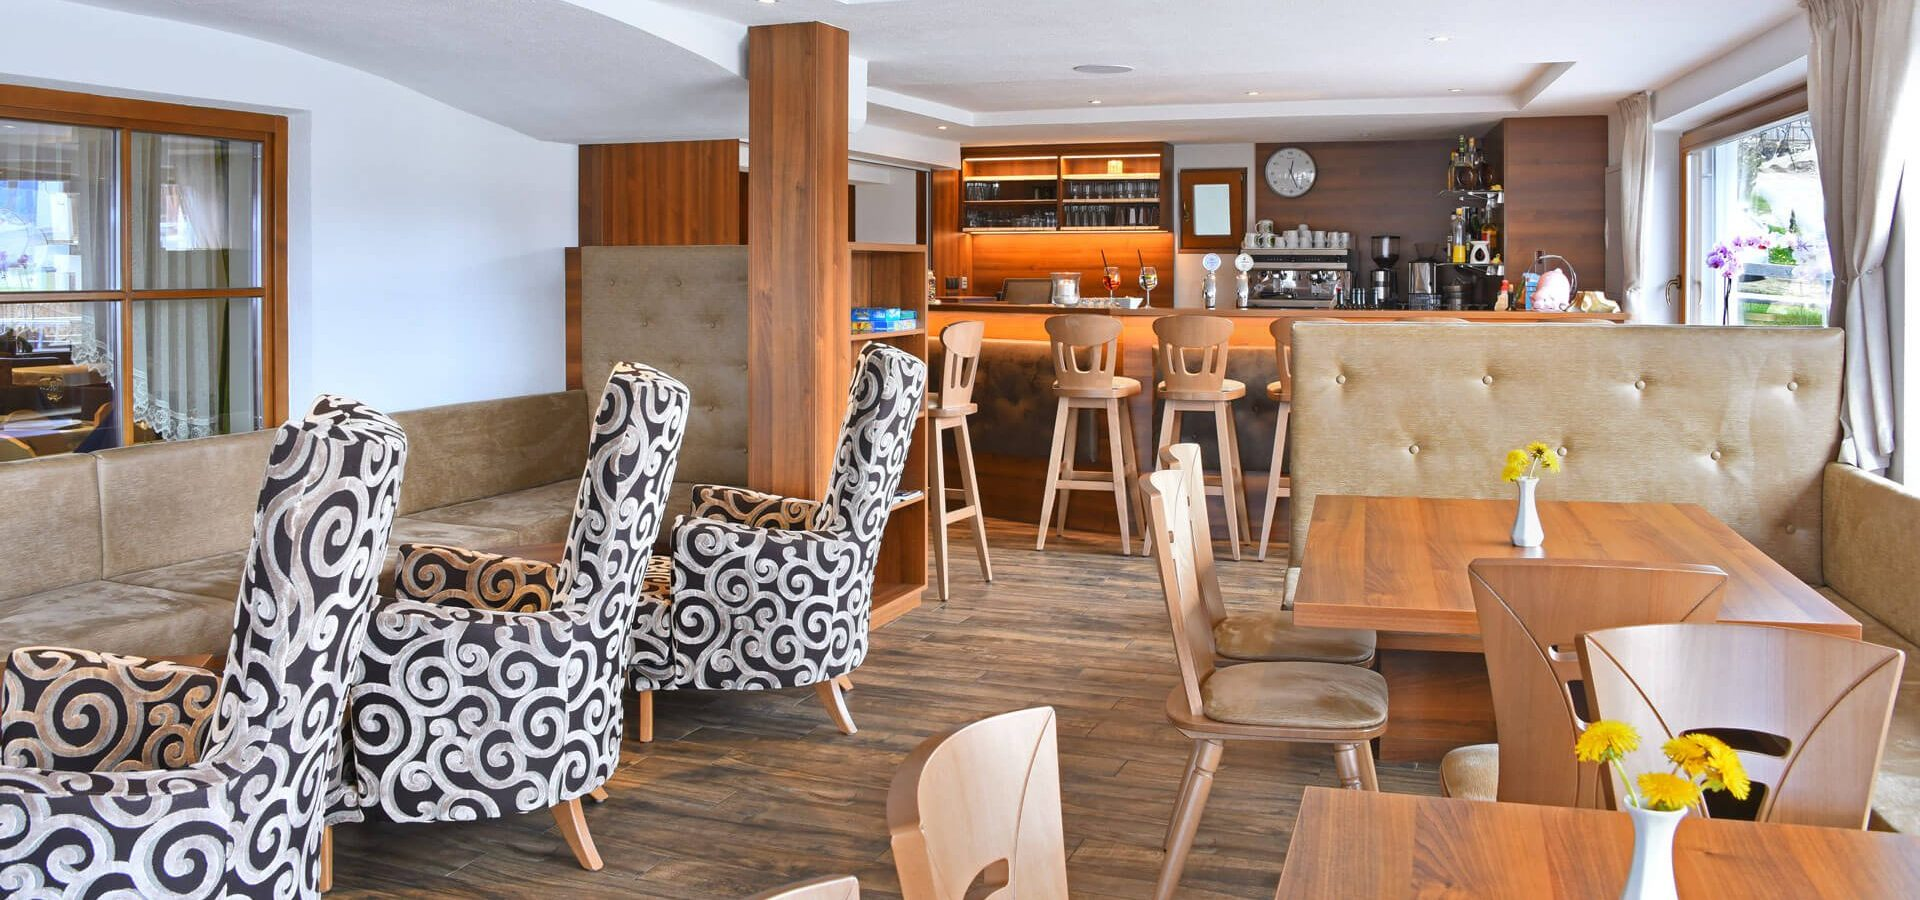 hotel-meransen-eisacktal-lounge-bar